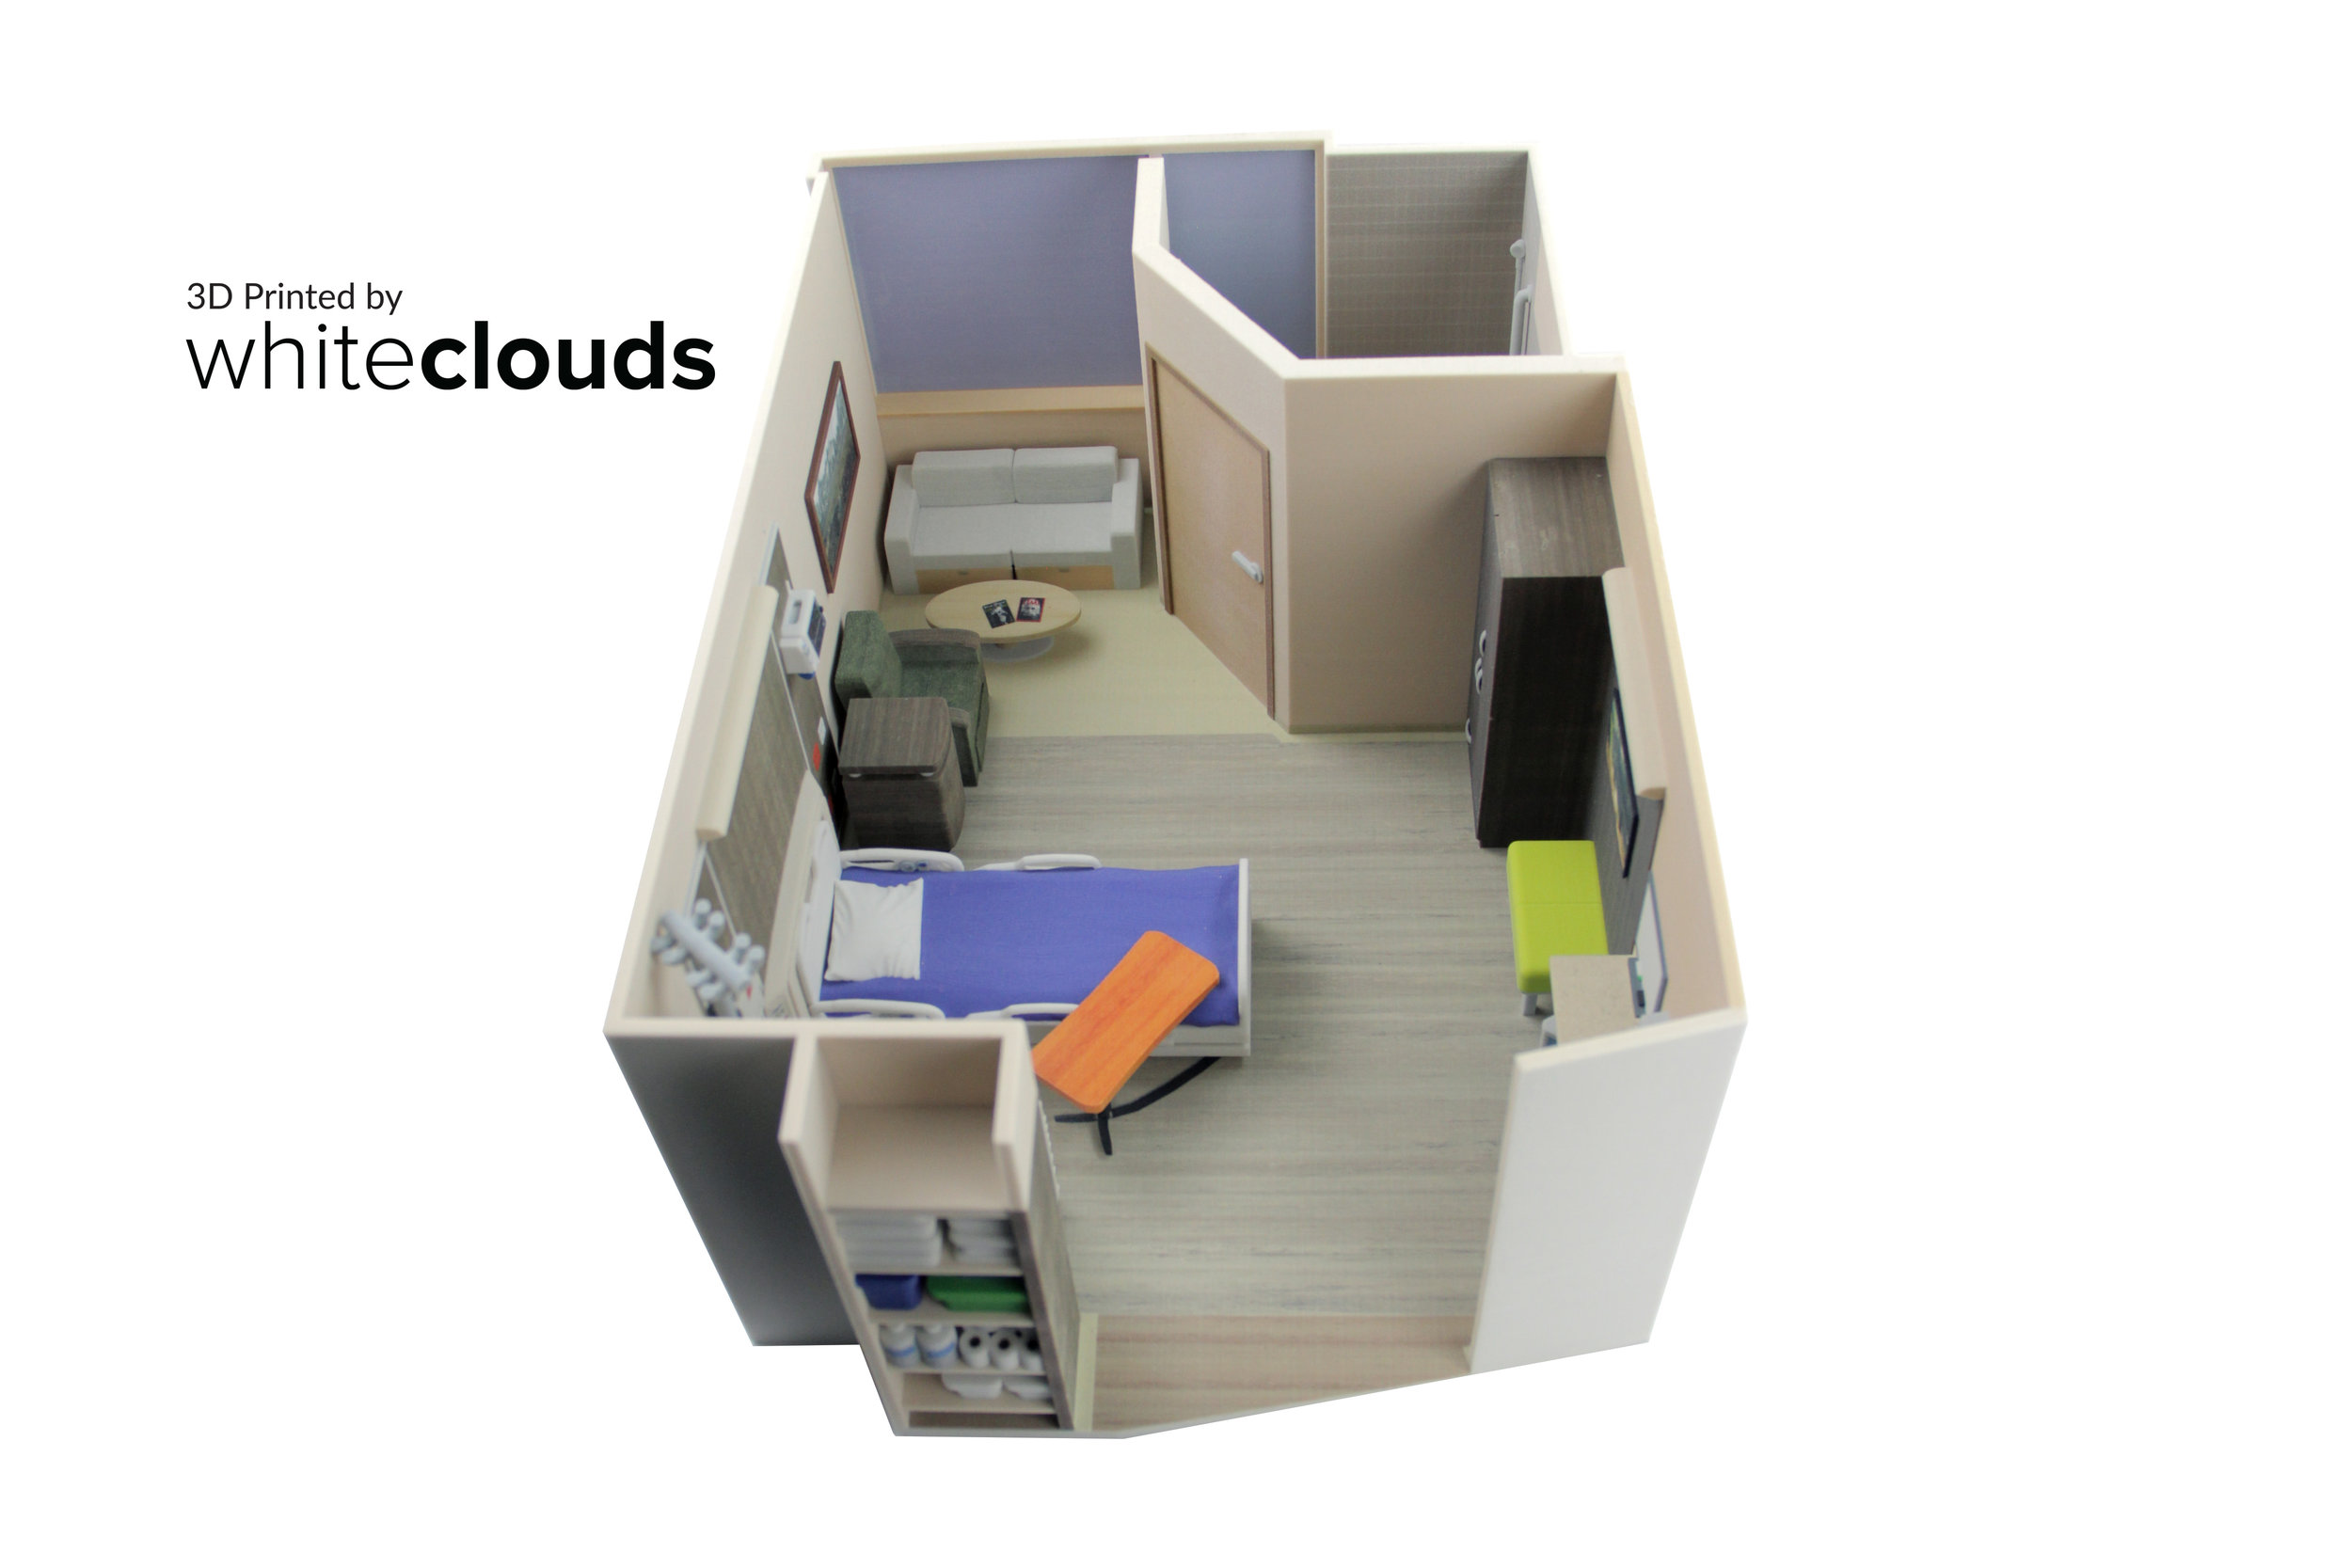 3D-Printed-WhiteClouds-Patient-Room-Architectural-IHC-Interior-Clean-3.jpg